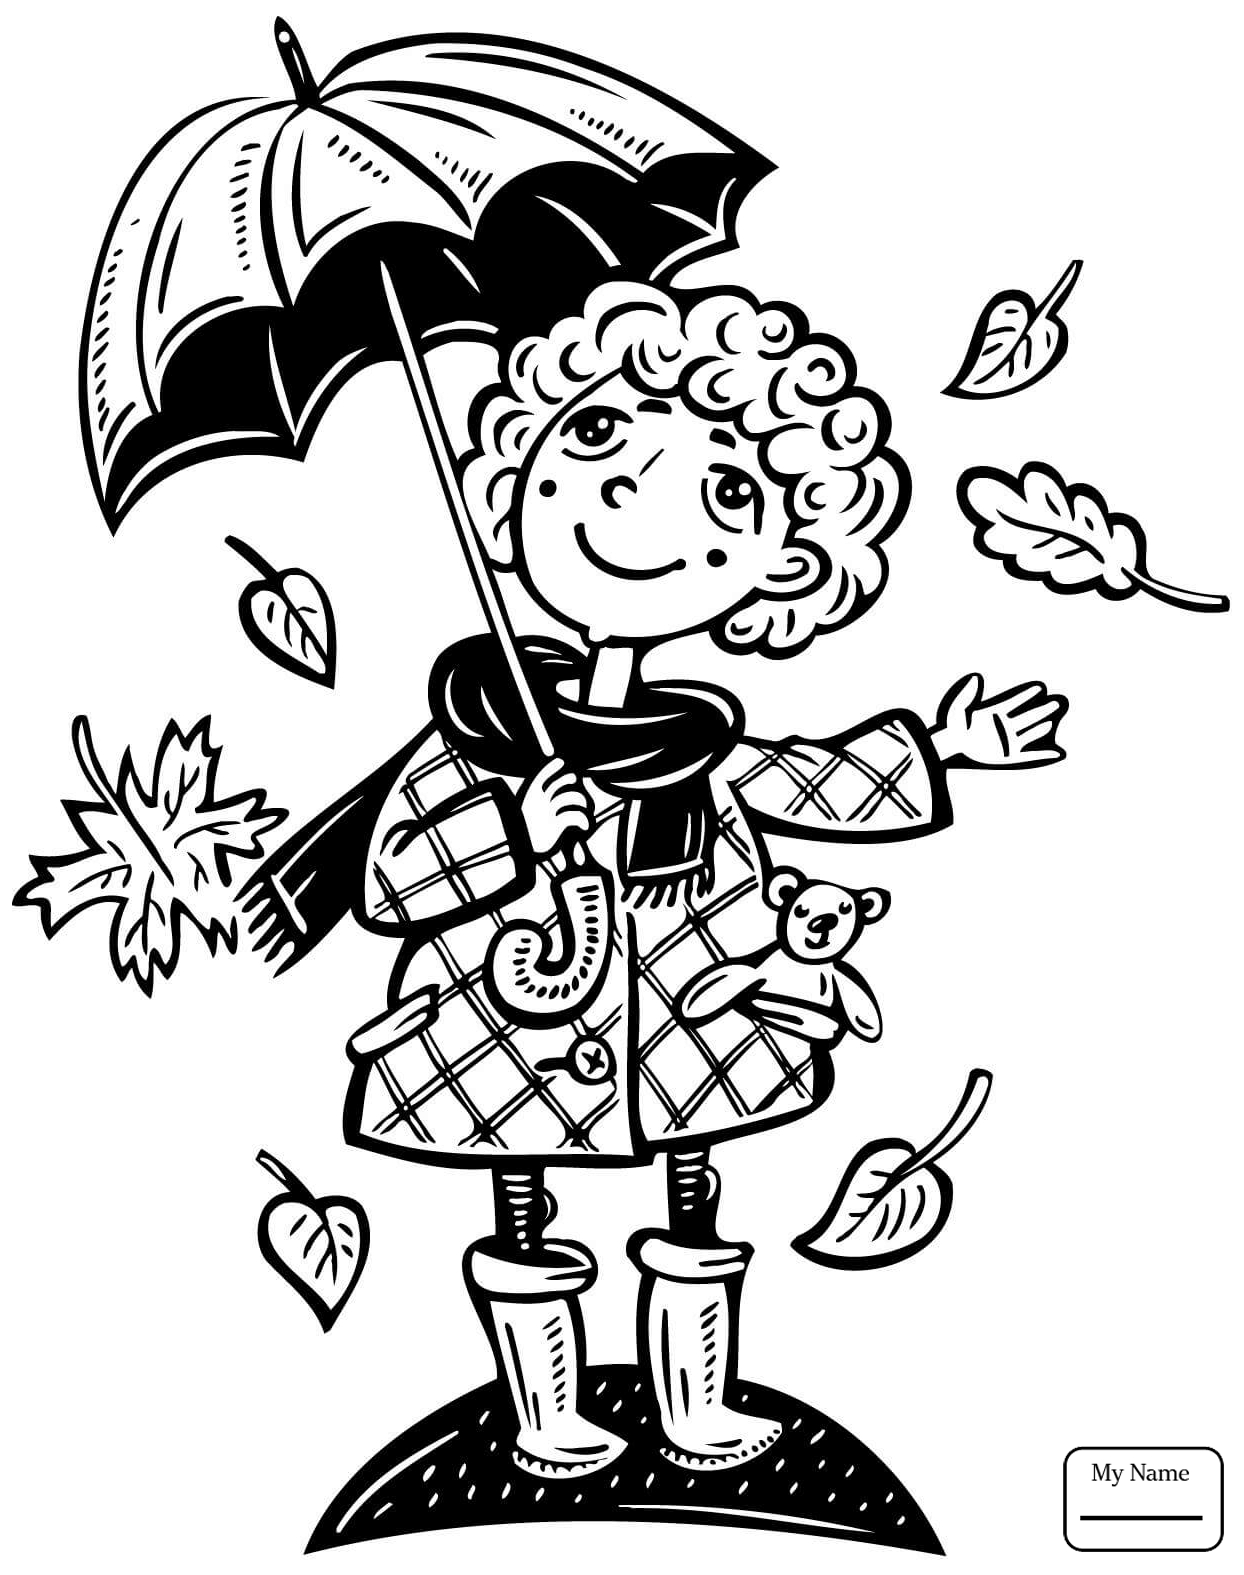 coloring picture people people coloring pages free download on clipartmag picture people coloring 1 1